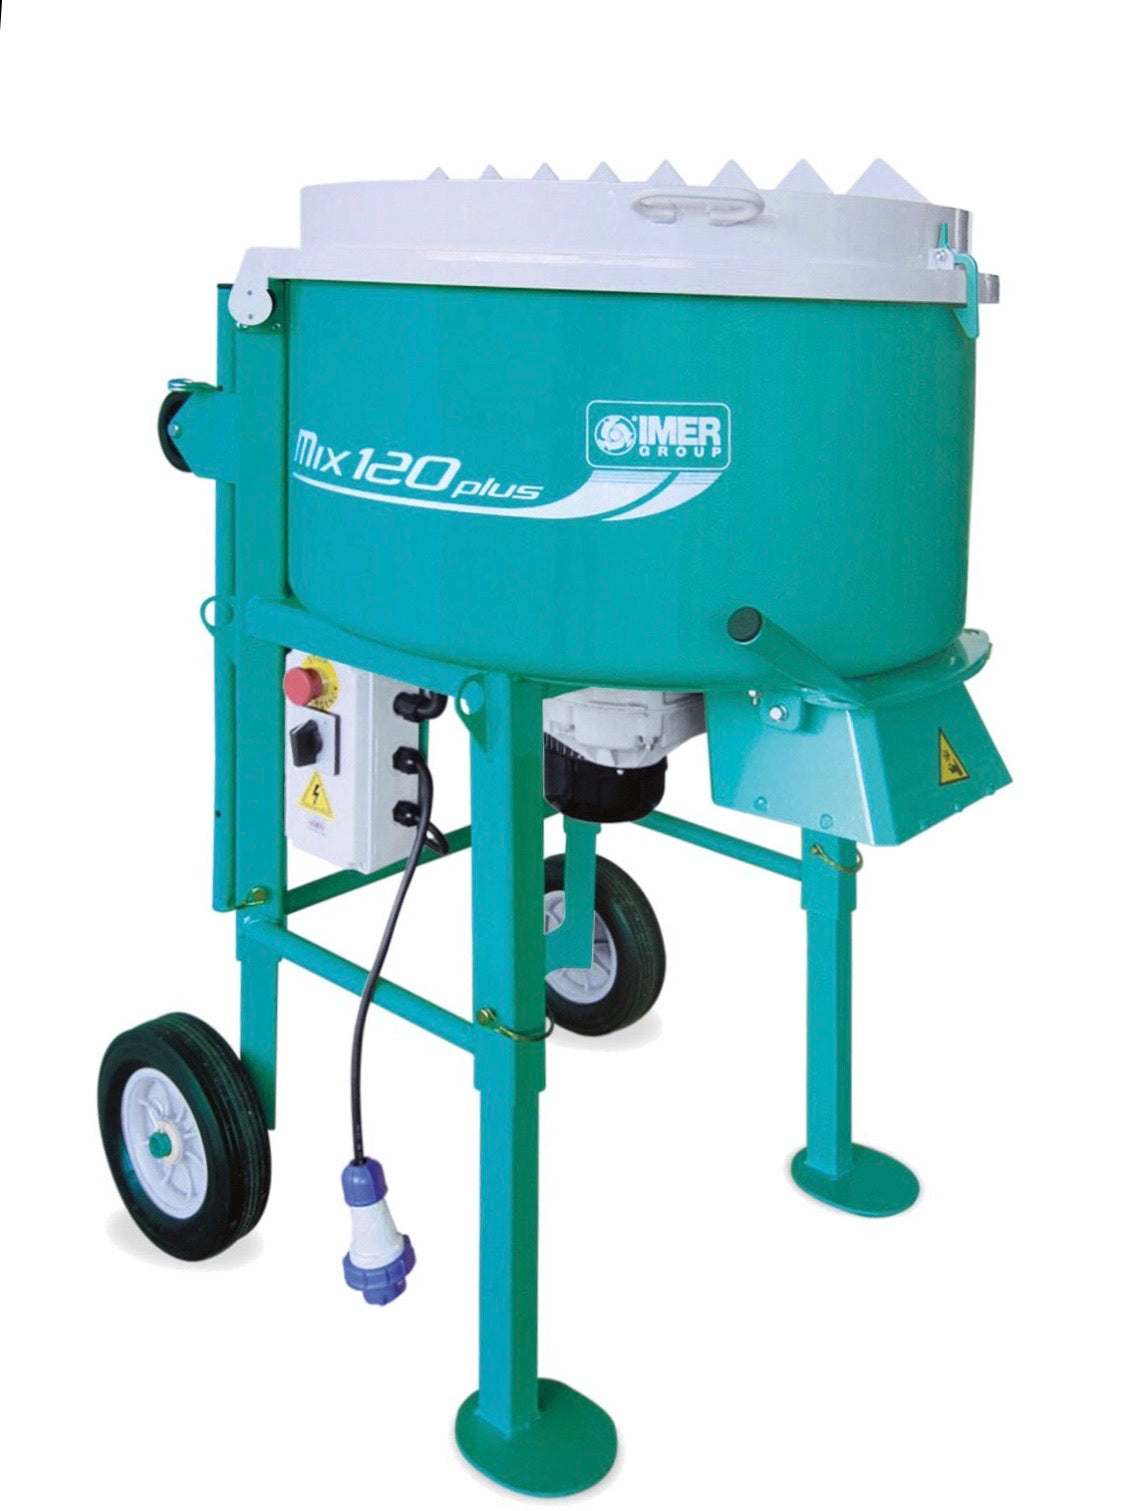 IMER MIX 120 Plus Portable Vertical Shaft Mixer - STANDARD GRATE